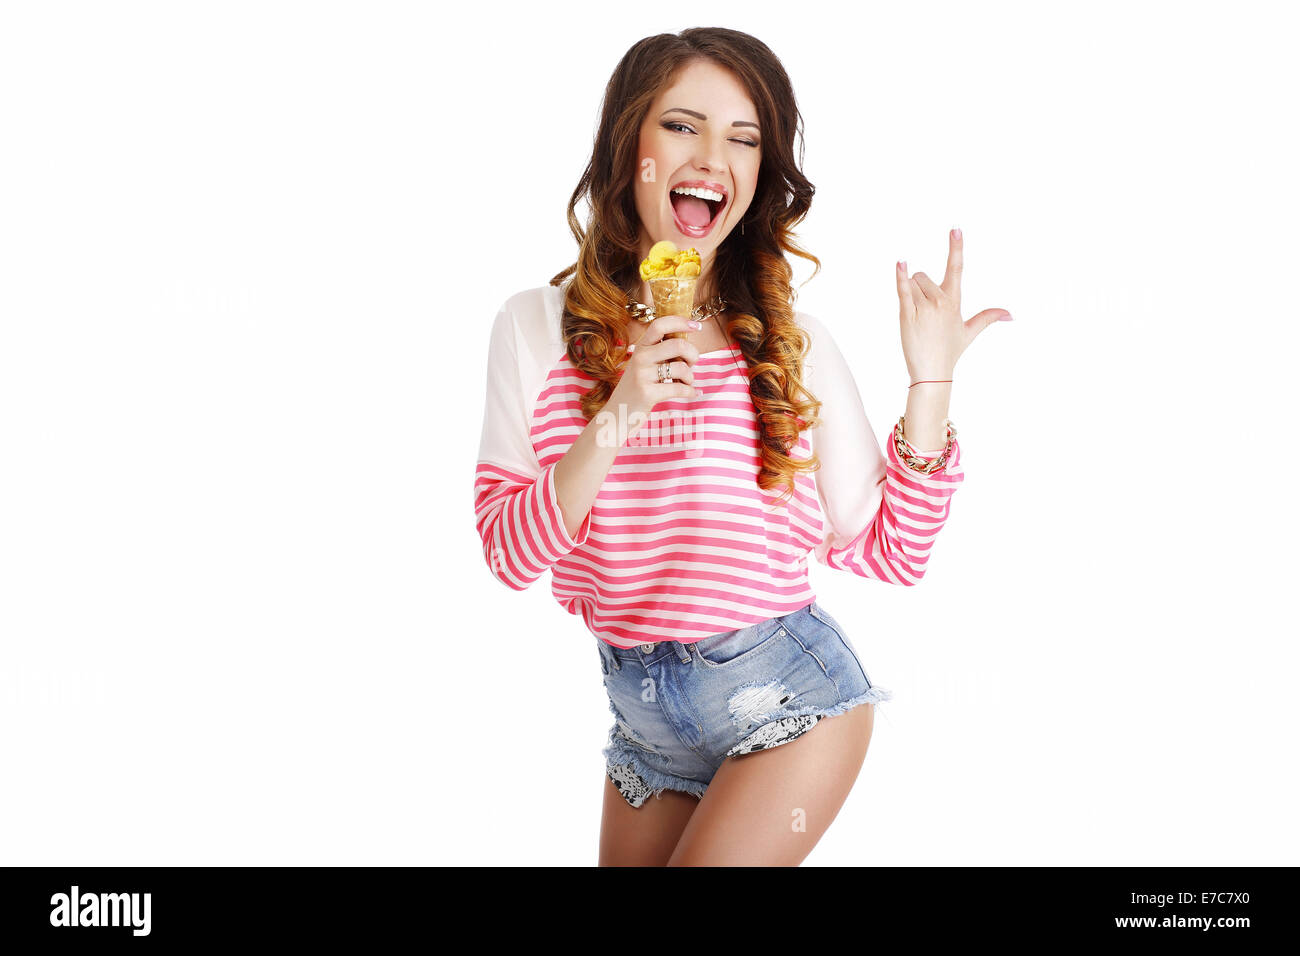 Sweetness. Cute Girl with Delicious Ice Cream Smiling - Stock Image